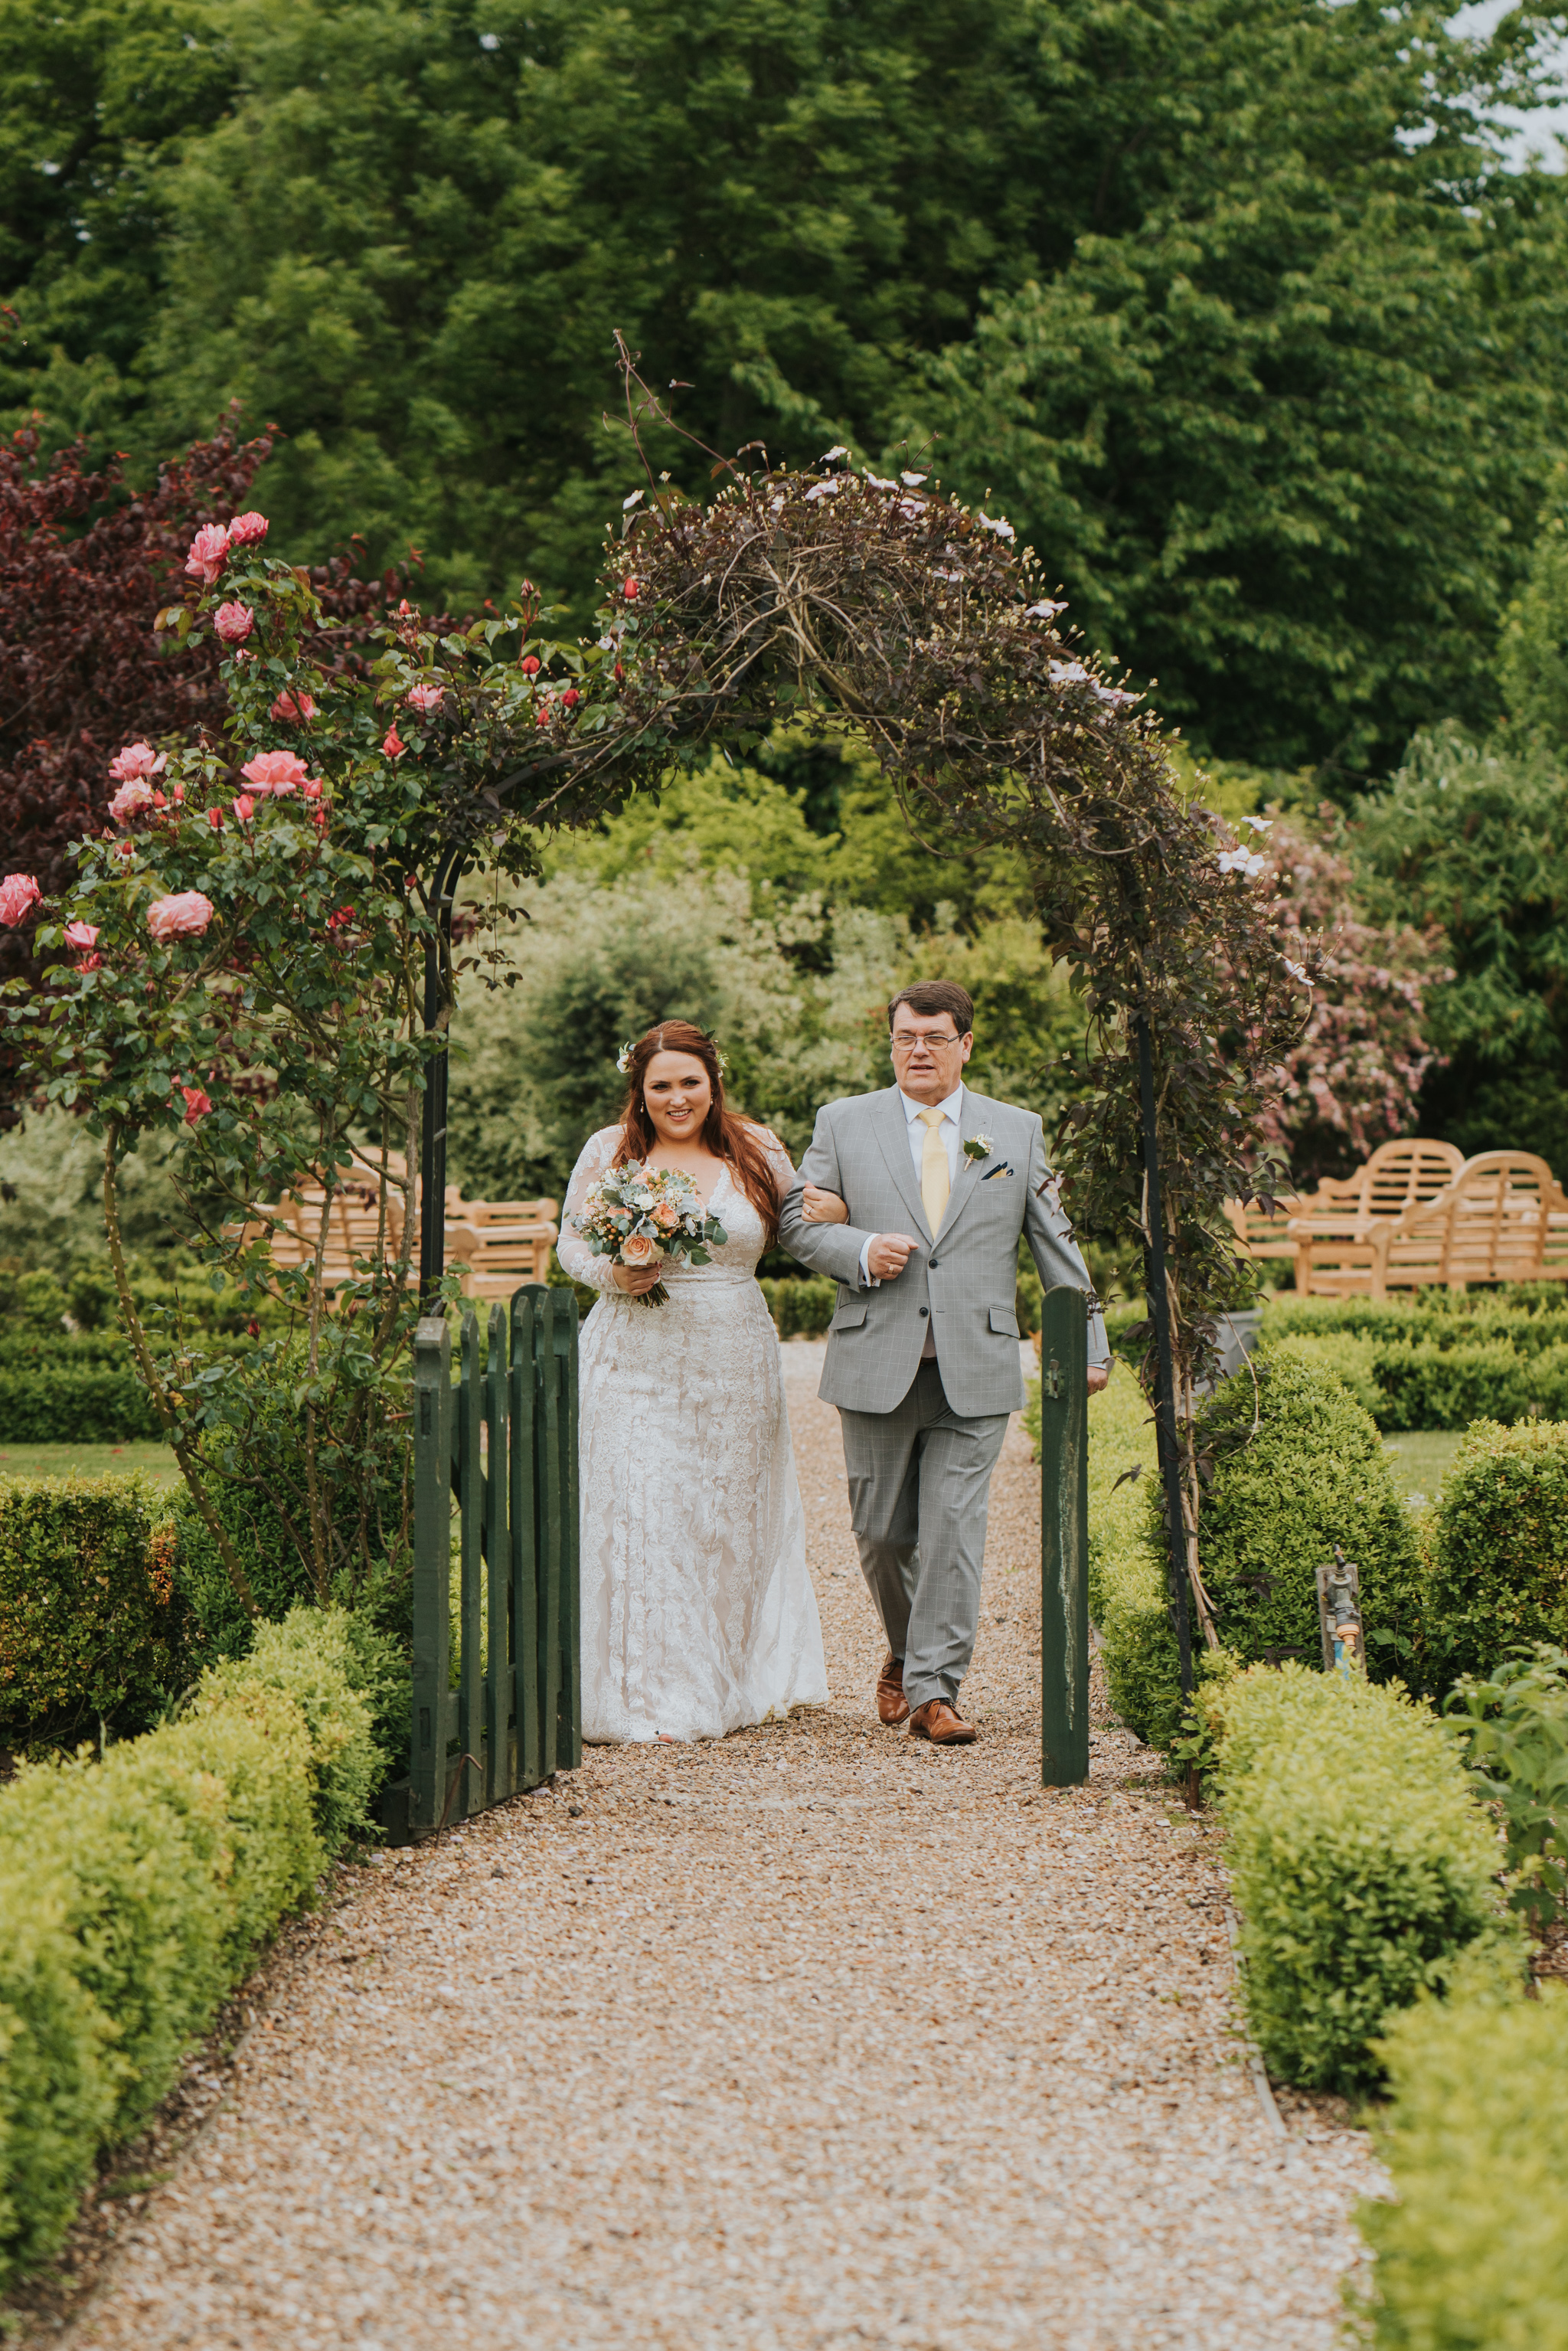 hayley-sam-secret-garden-kent-boho-wedding-grace-elizabeth-colchester-essex-alternative-wedding-photographer-essex-suffolk-norfolk-devon (11 of 36).jpg